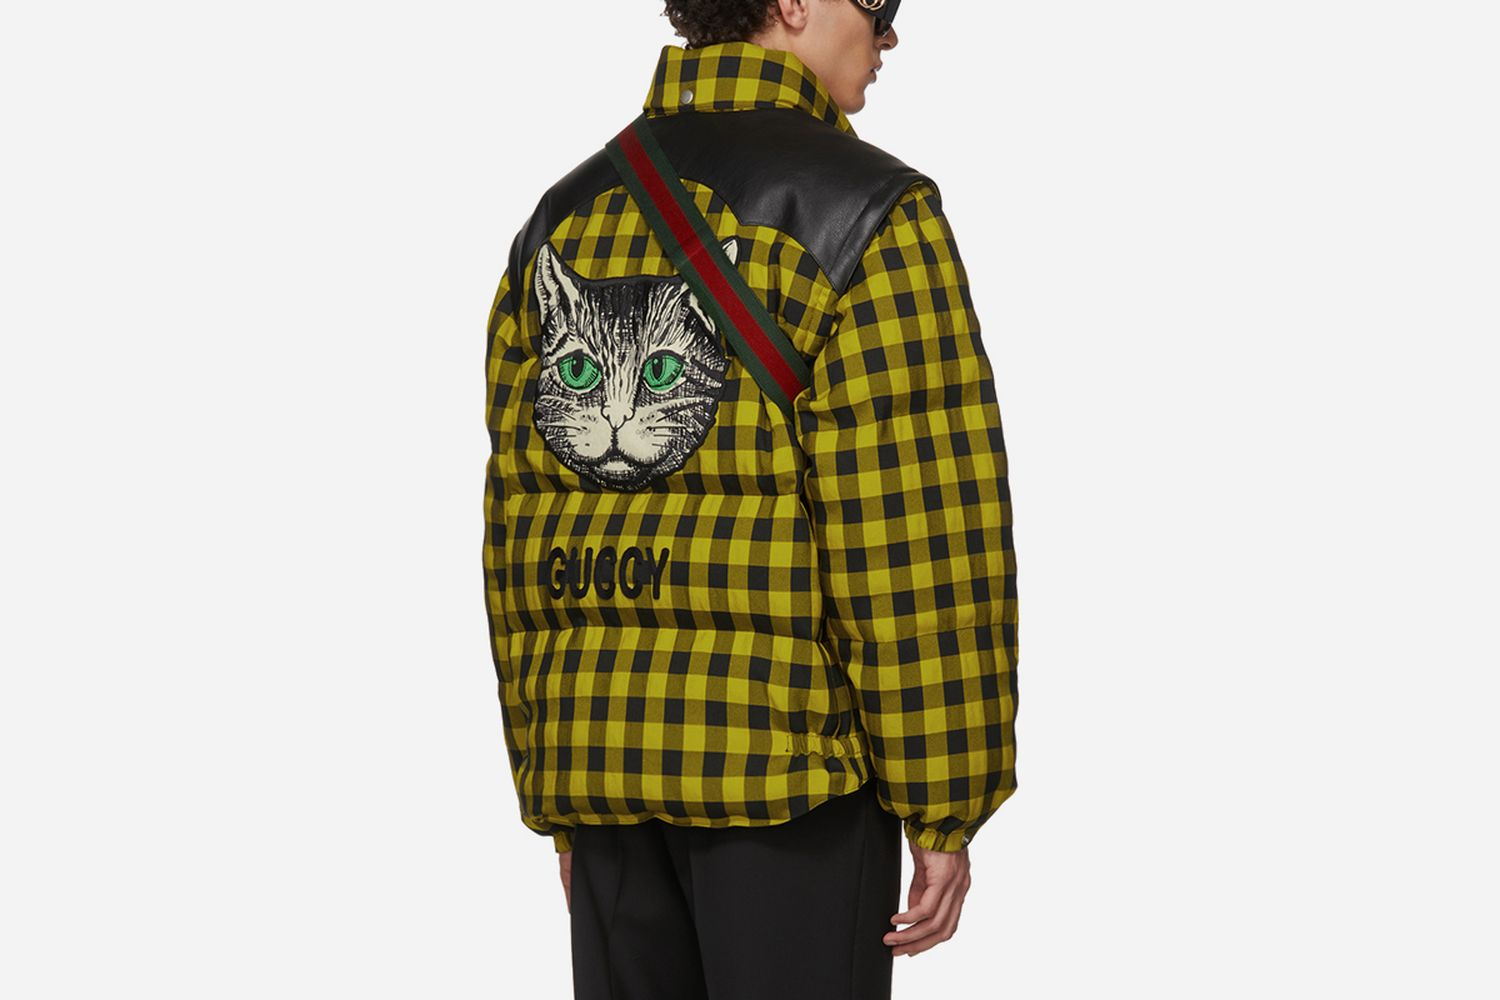 Down 'Guccy' Jacket